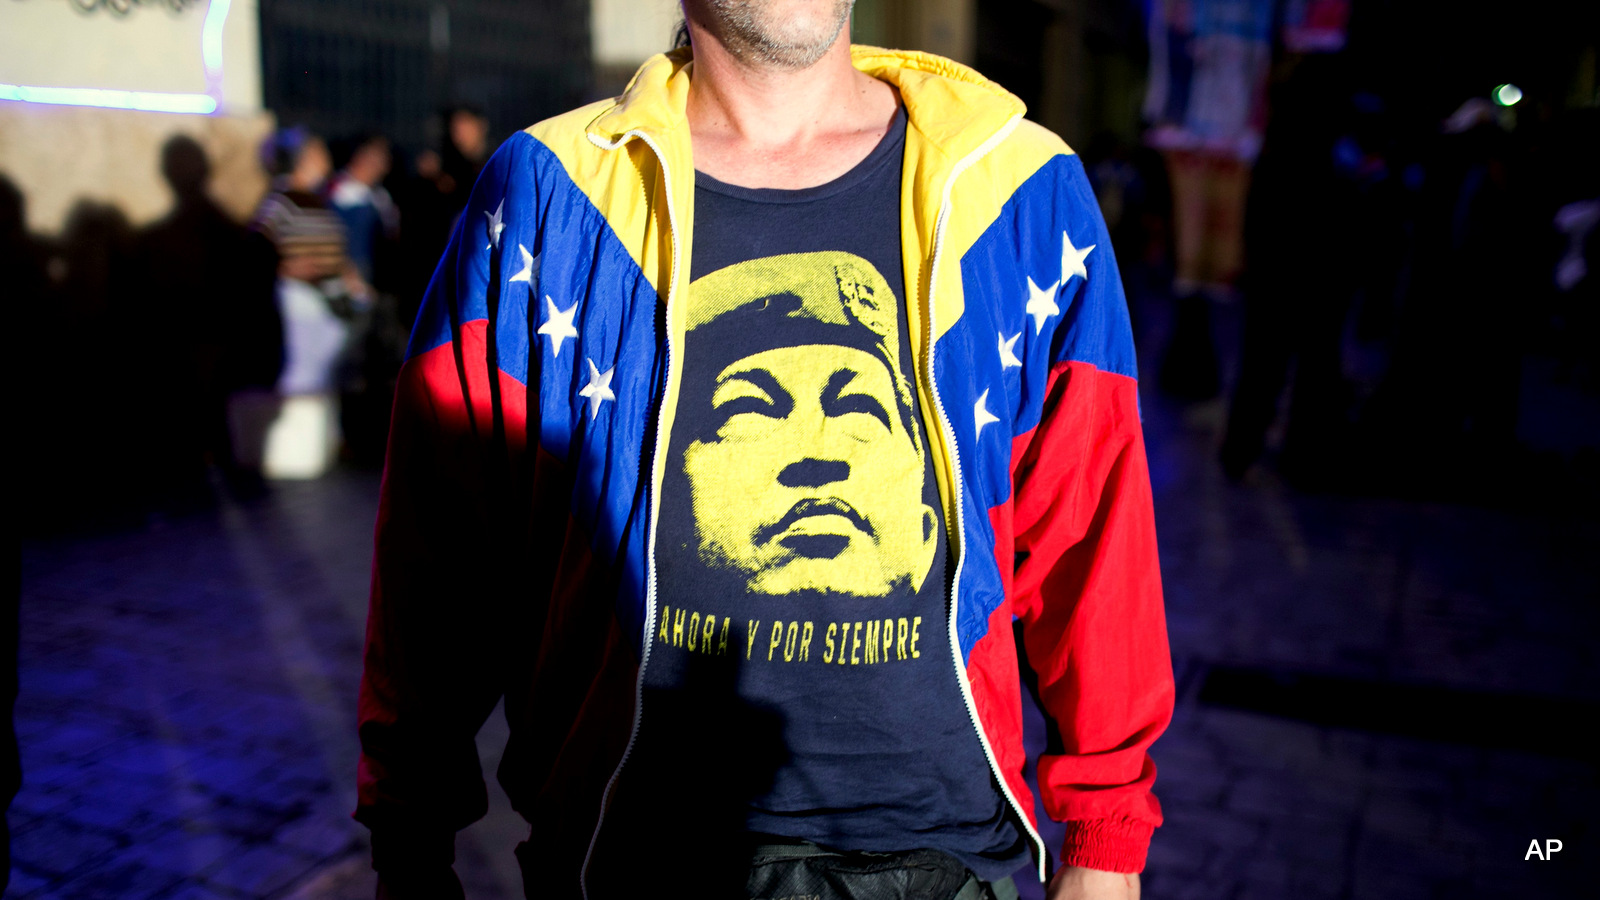 A pro-government supporter wears a T-Shirt with image of Venezuela's late President Hugo Chavez, as he waits for results during congressional elections in Caracas, Venezuela, Sunday, Dec. 6, 2015.